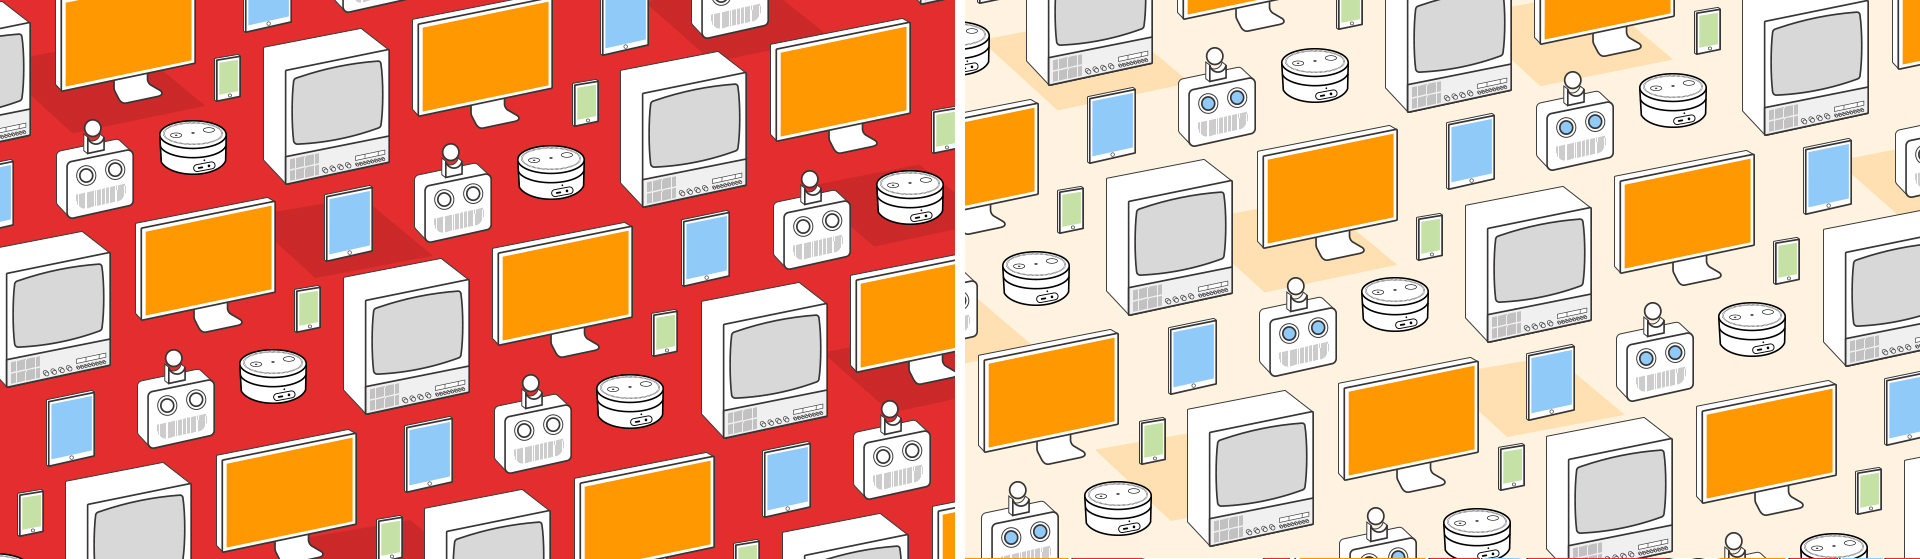 Two versions of the Alley repeating pattern, with robots, television screens, computers, Amazon Alexas, and smart devices overlaid on a red, and separate a pale orange background